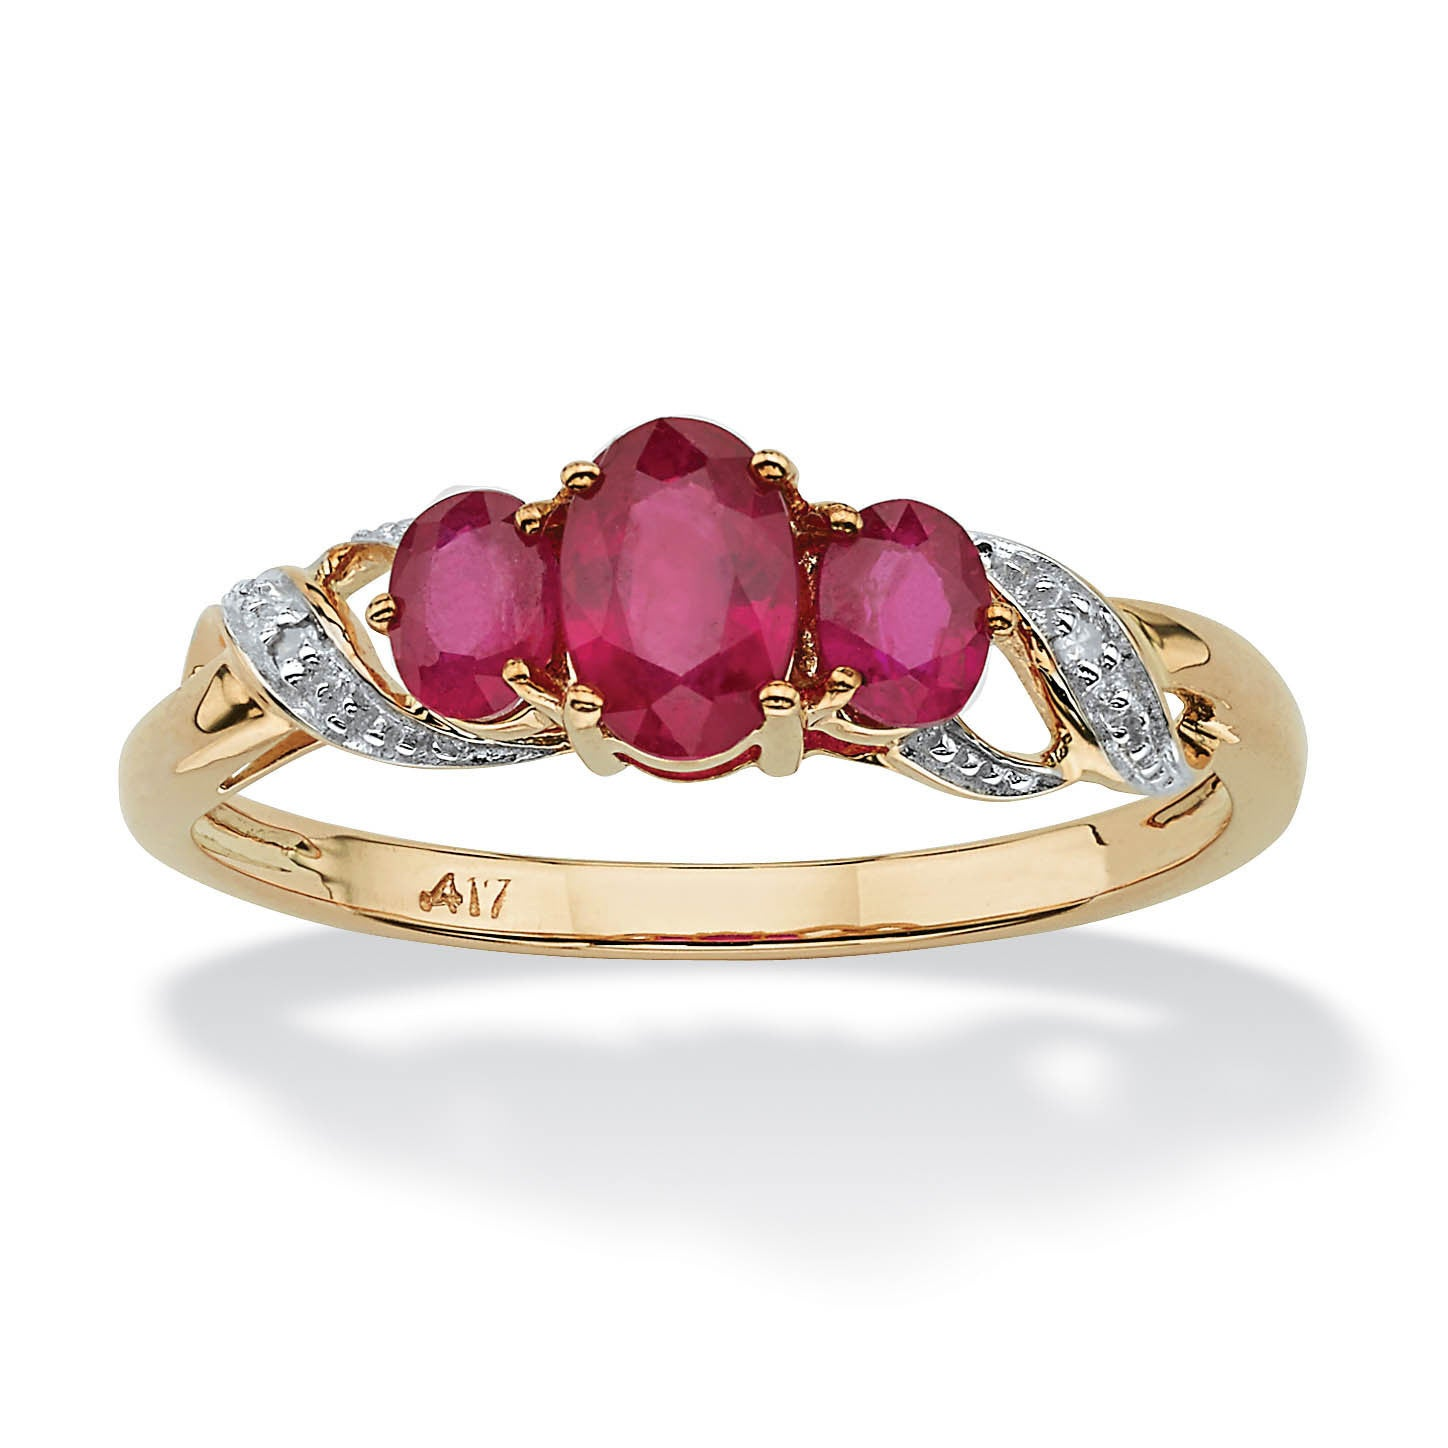 gold rings white accents kay diamond engagement m ruby jewelry oval jewelers in listing ring accent